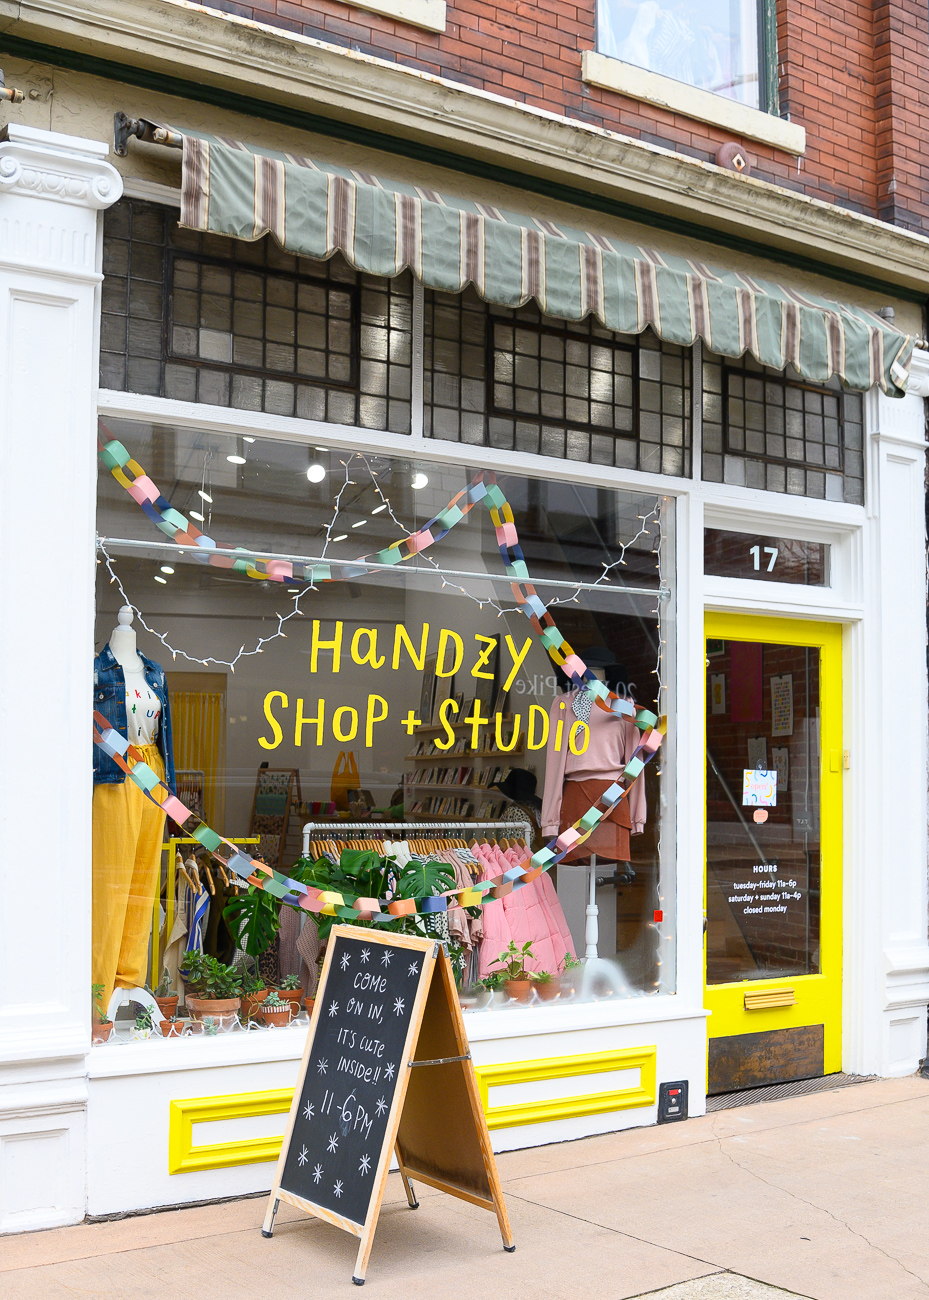 Though Handzy Shop + Studio has been around for years, owners Brittney Braemer and Suzy Strachan have evolved the focus of the shop and studio over time, even moving it one door down from its previous location on Pike Street in Covington in November of 2019. If you've never been inside the shop, you'll find all manner of women's clothes, accessories, stationery, gifts, and small home goods for sale from both local and national vendors and artists, and from brands located abroad. ADDRESS: 17 W. Pike Street (41011) / Image: Phil Armstrong, Cincinnati Refined // Published: 12.18.19